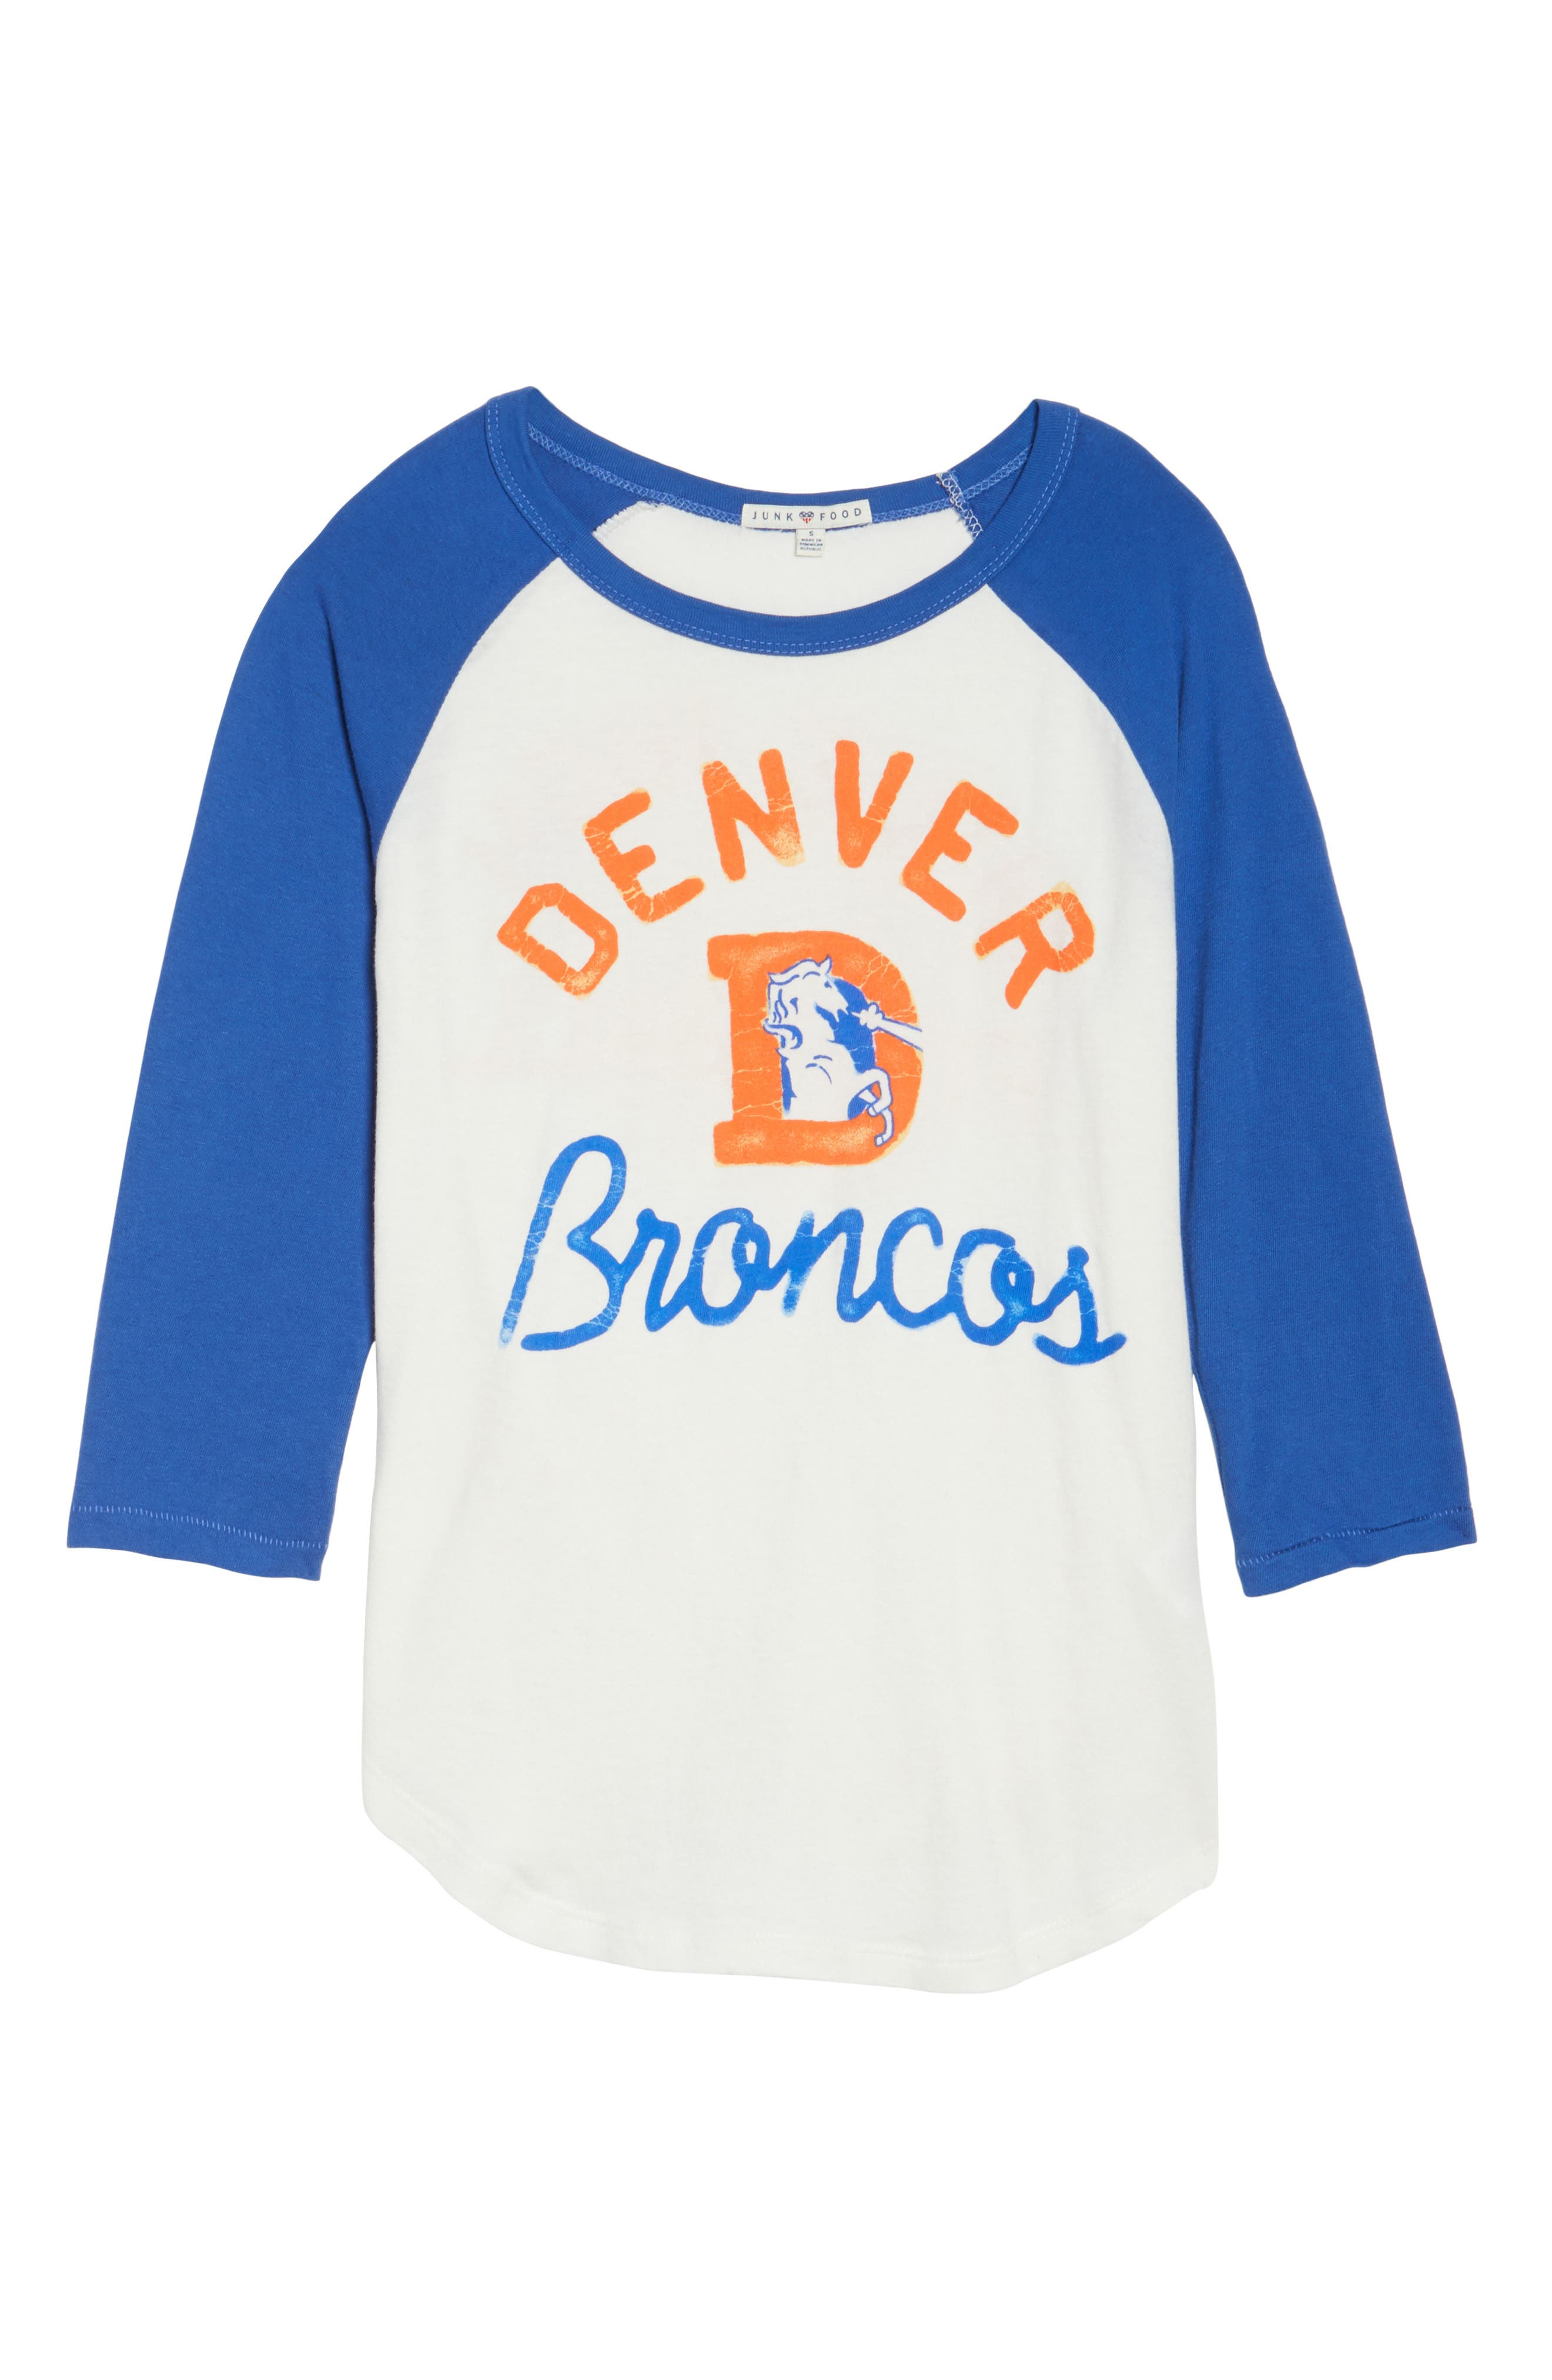 NFL Denver Broncos Raglan Tee,                             Alternate thumbnail 6, color,                             189